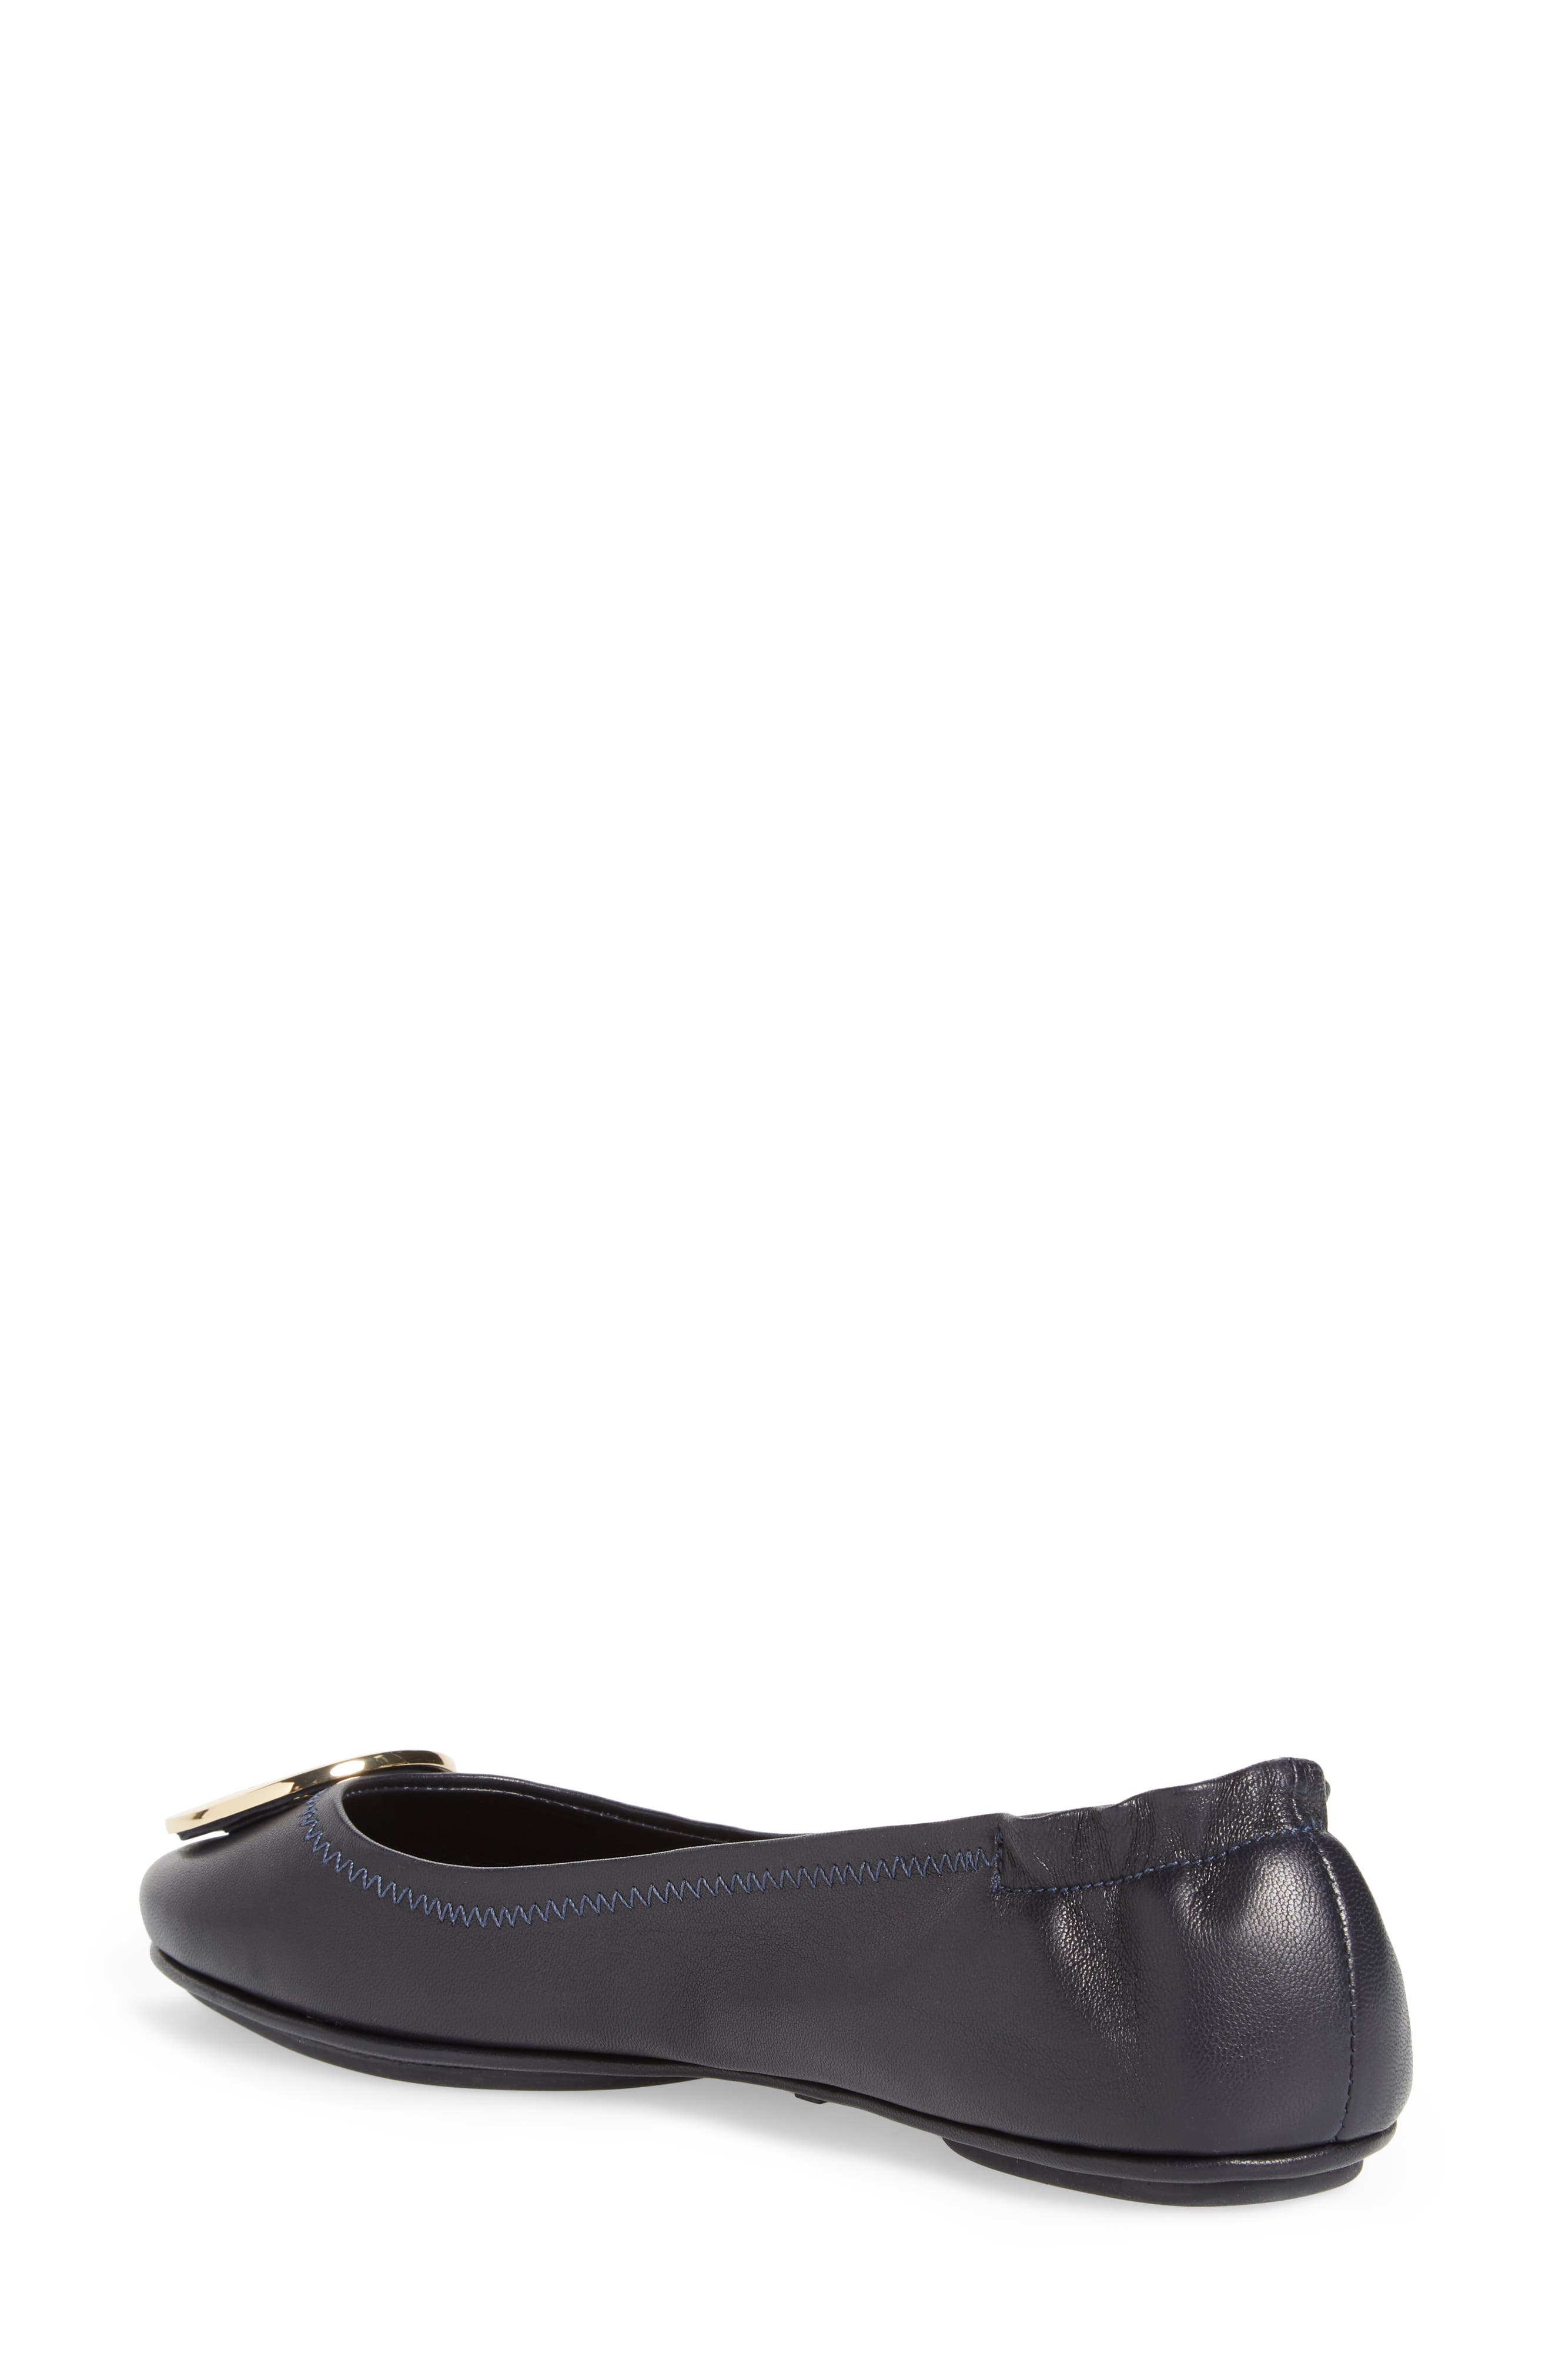 'Minnie' Travel Ballet Flat,                             Alternate thumbnail 2, color,                             PERFECT NAVY